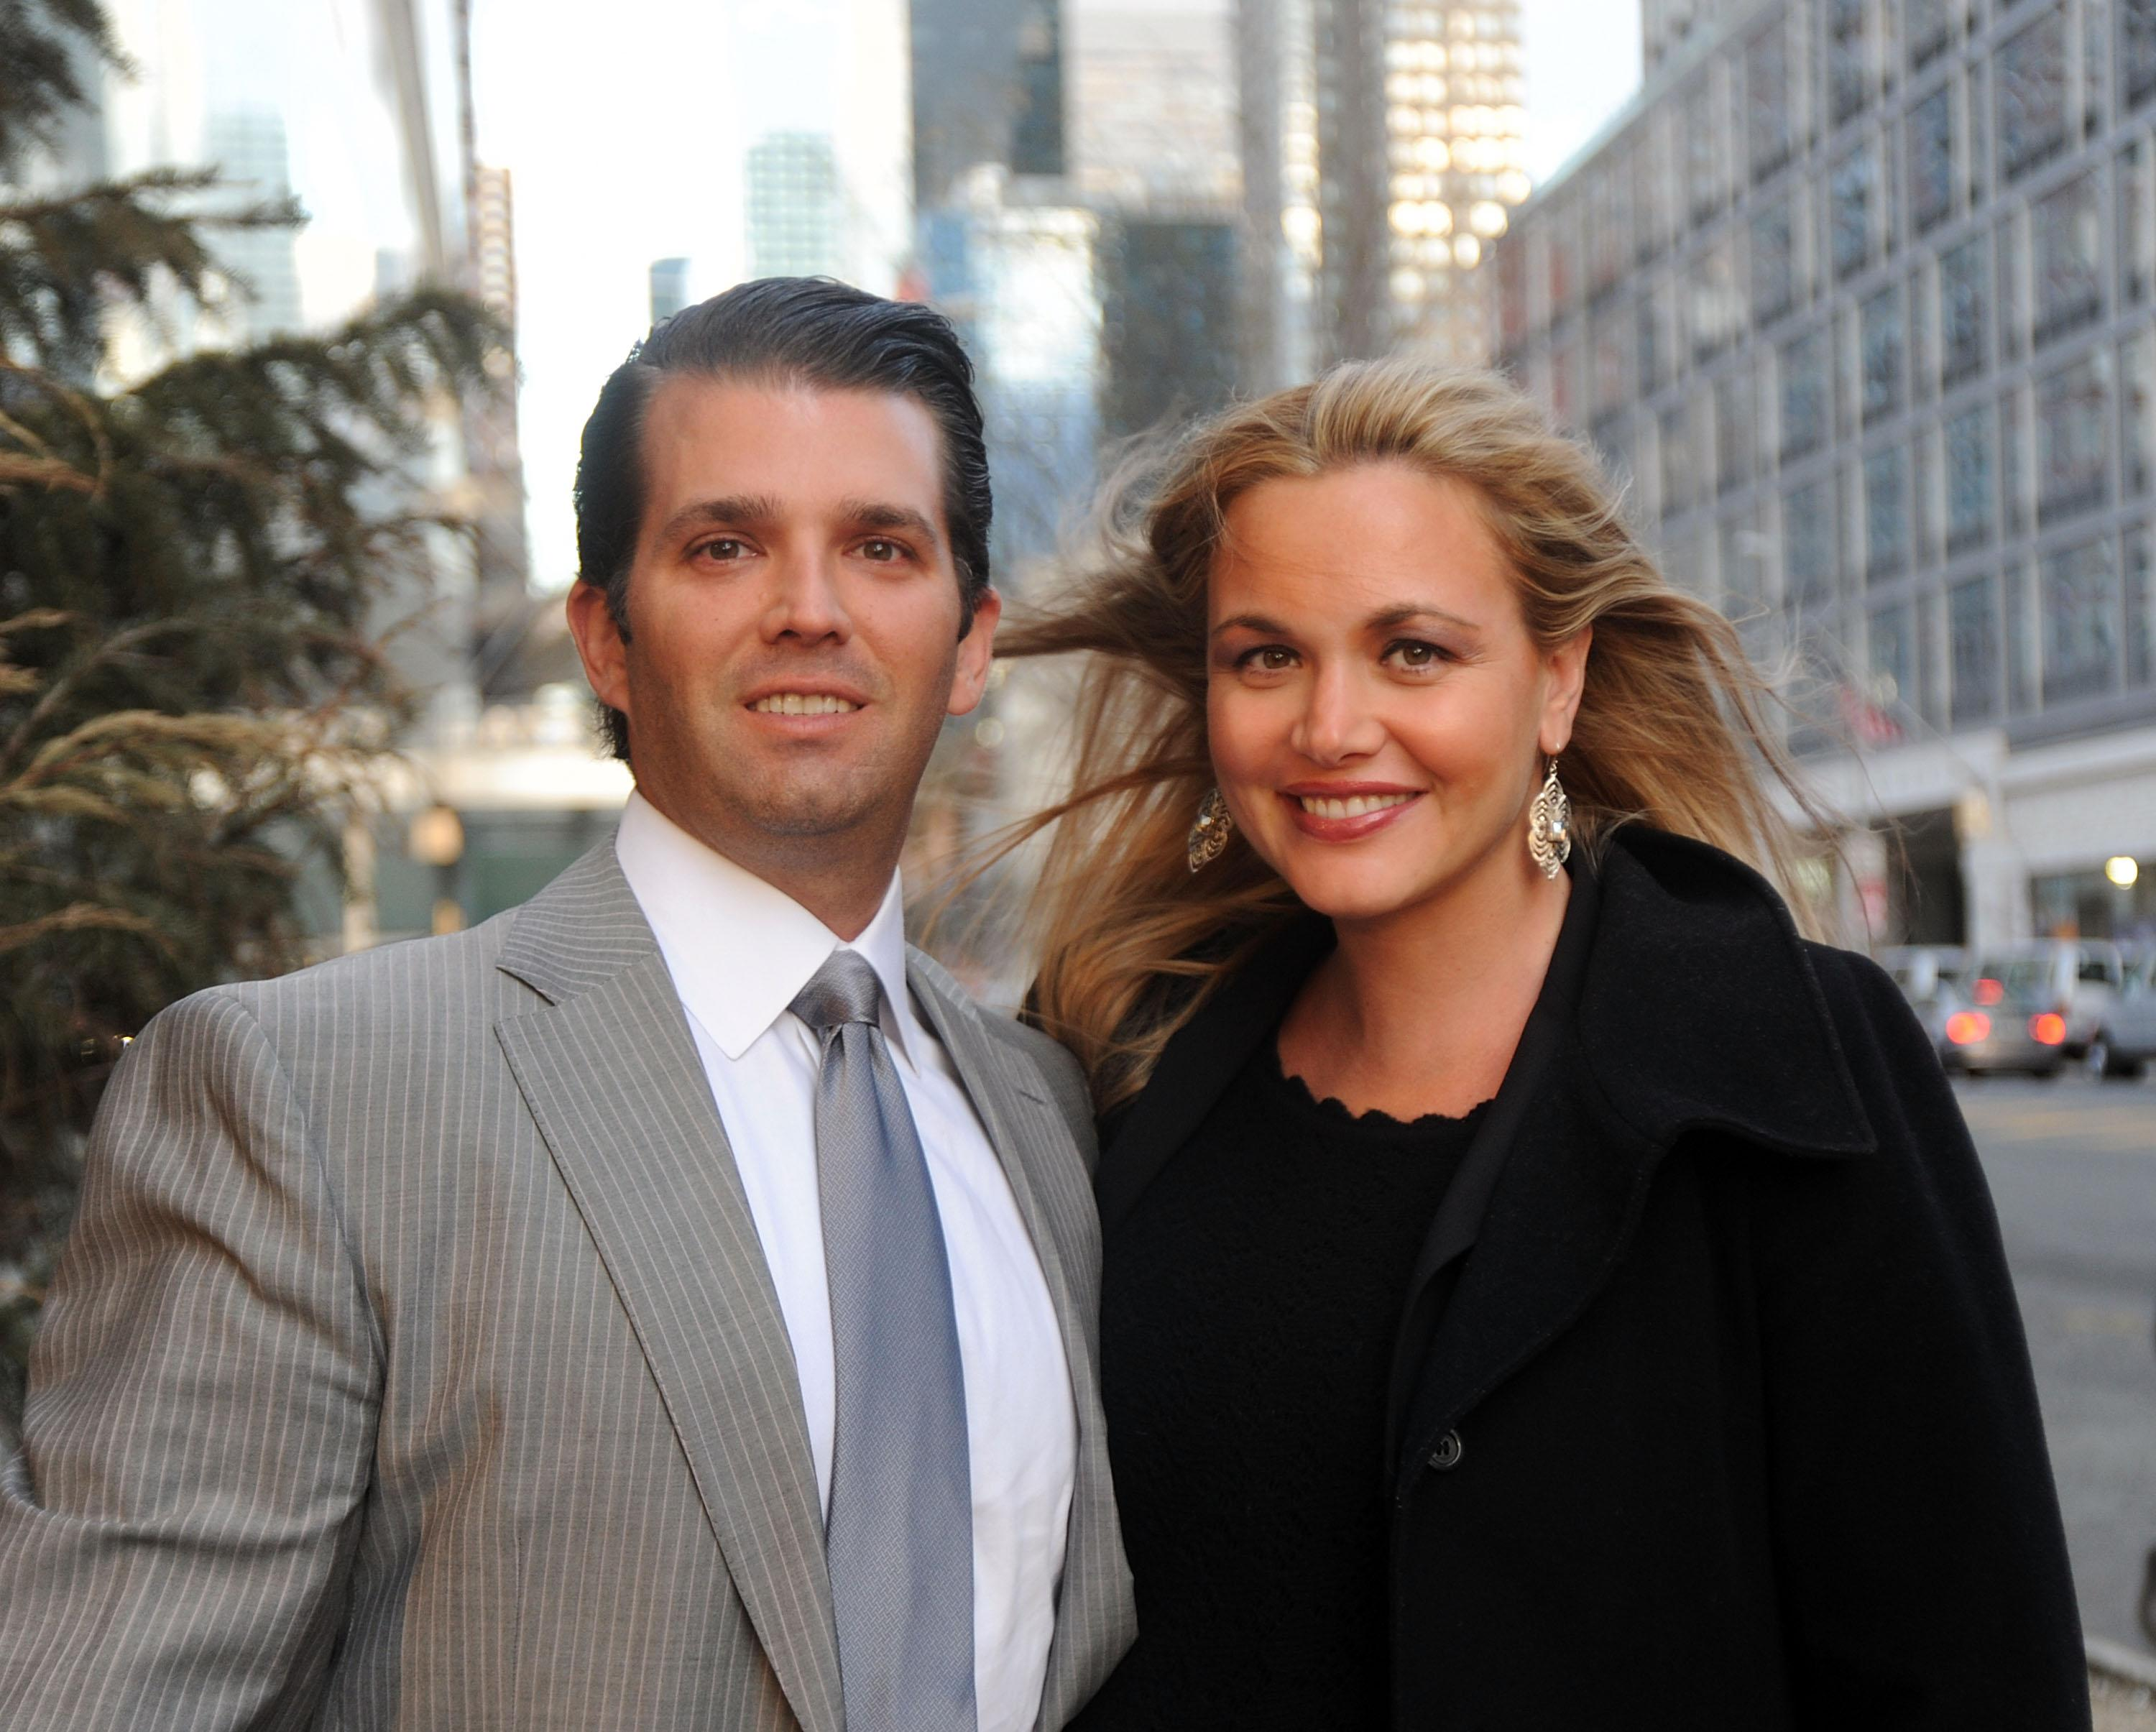 Donald Trump Jr. and Vanessa Trump, on the set of <em>Celebrity Apprentice</em> in 2014, are divorcing. (Photo: Bobby Bank/GC Images)